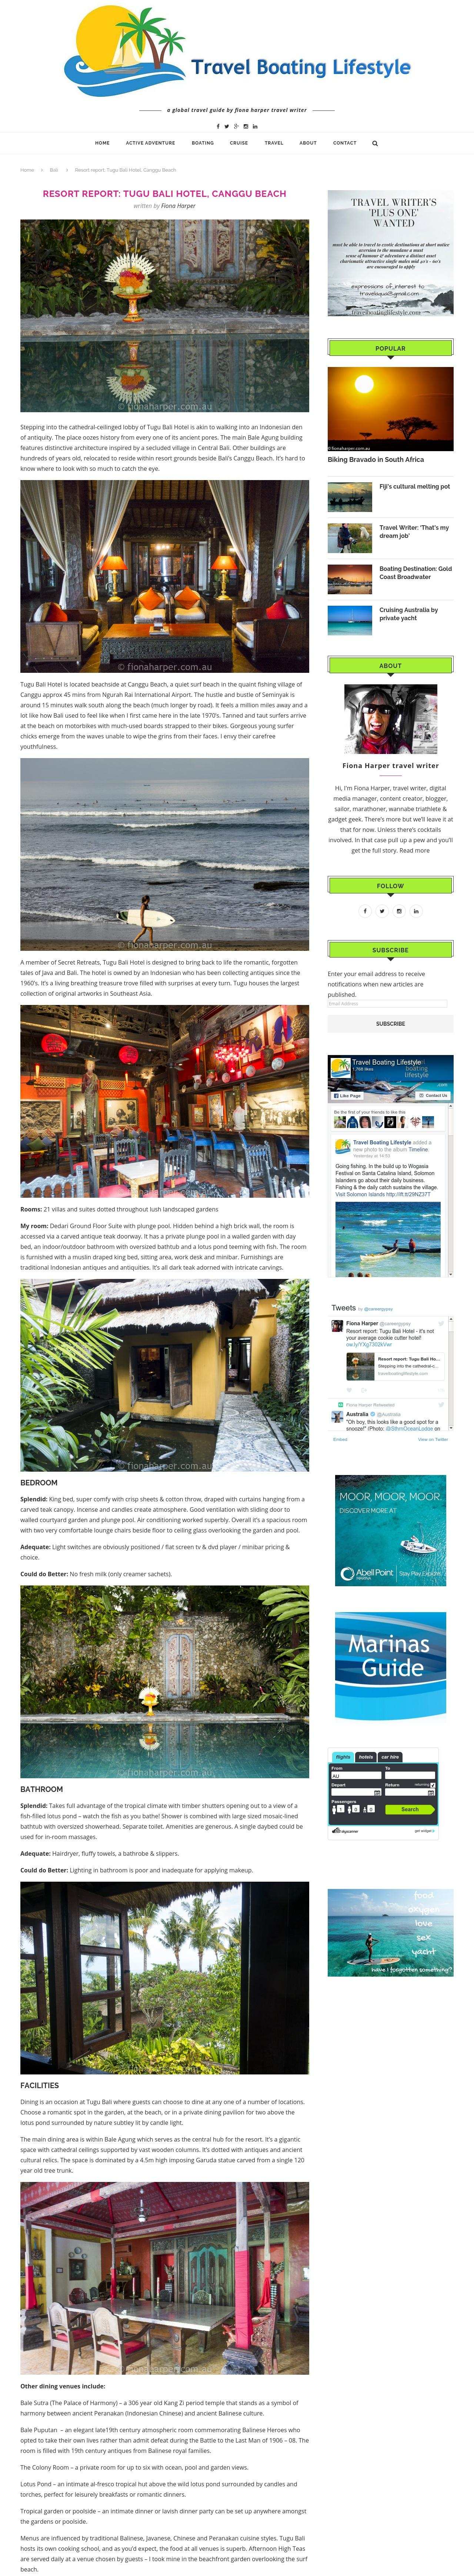 Resort Report Tugu Bali Hotel, Canggu Beach - travelboatinglifestyle.com1